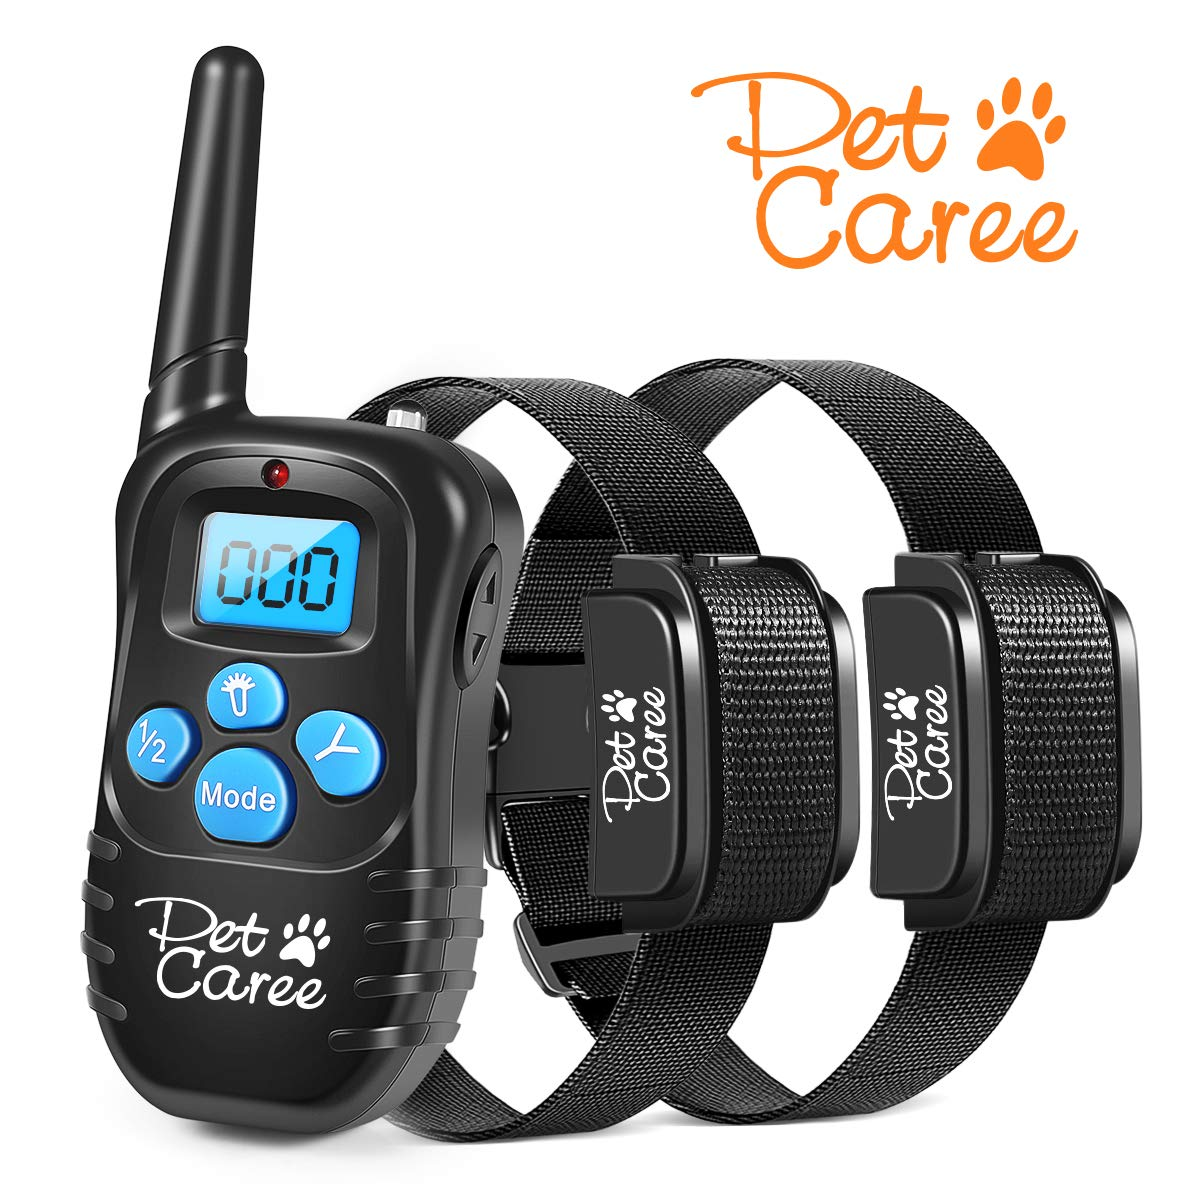 JaneSame Dog Training Collar Rechargeable and Rainproof 330 yd Remote Dog Shock Collar with Beep, Vibra and Shock Electronic Collar